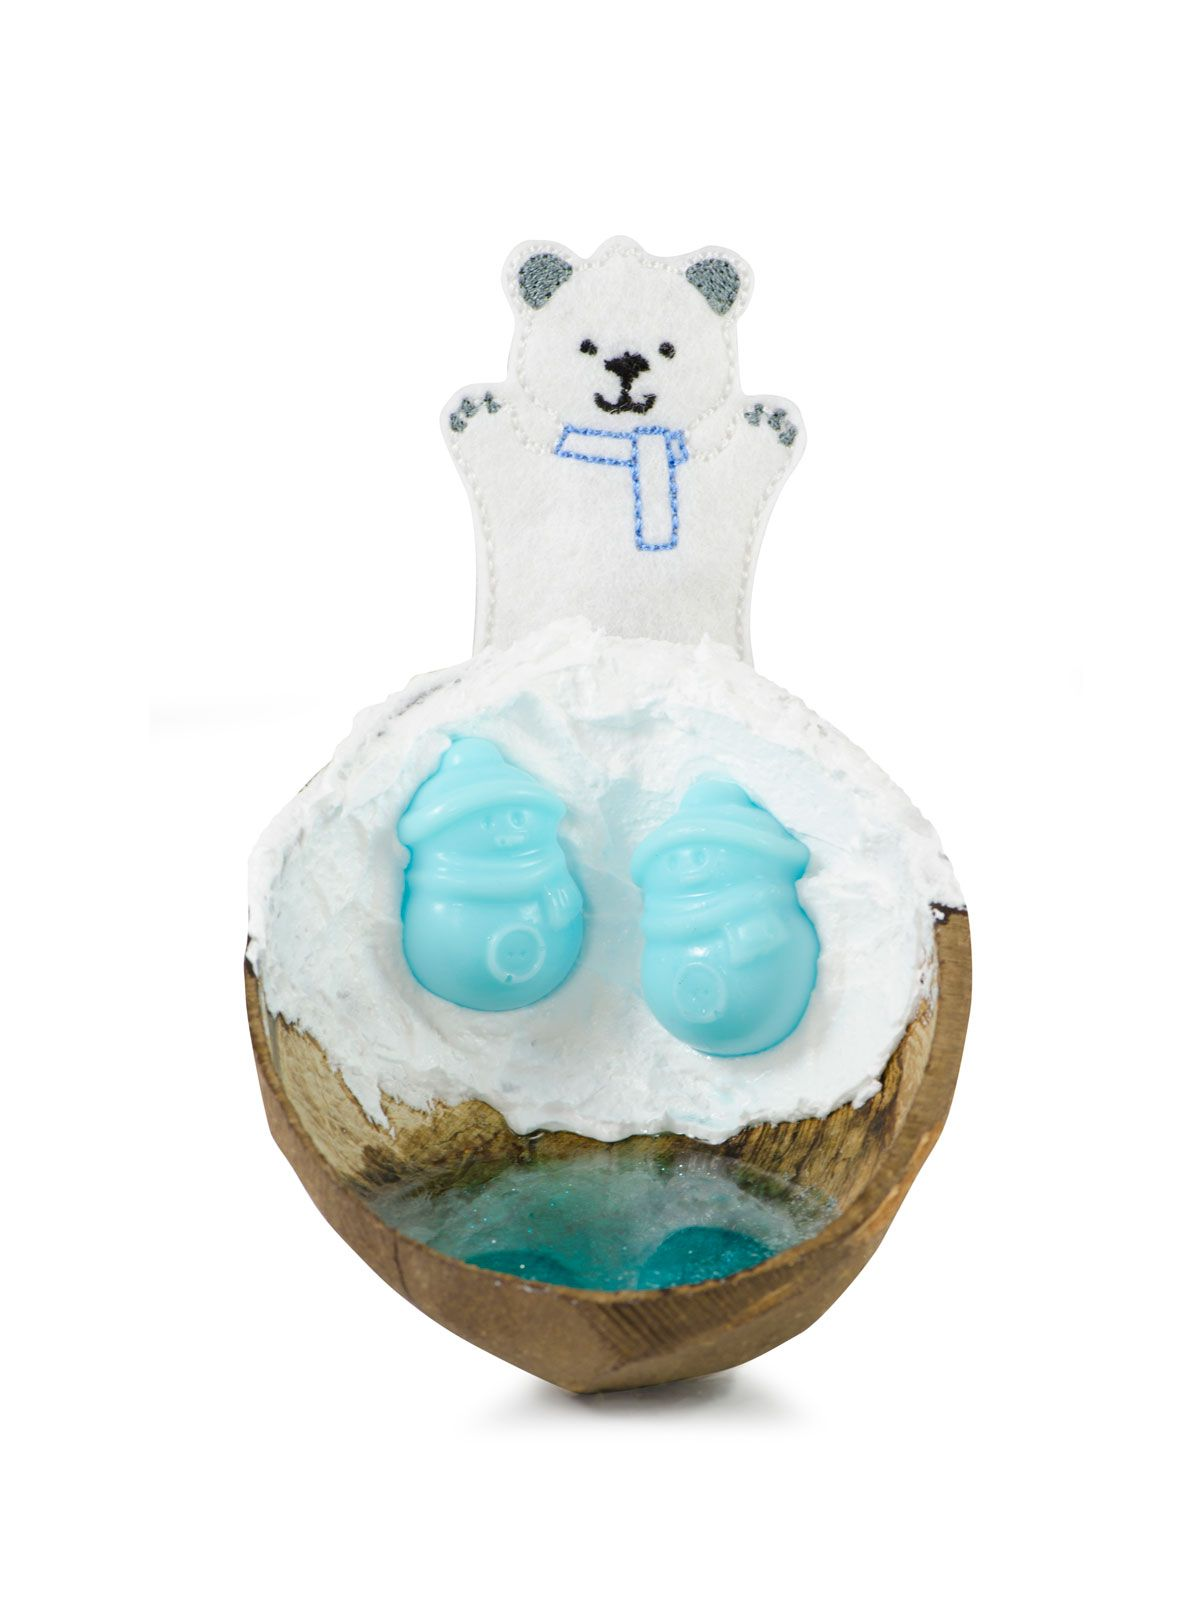 Journey to the North Pole in our Polar Bath Adventure! Play with the ...